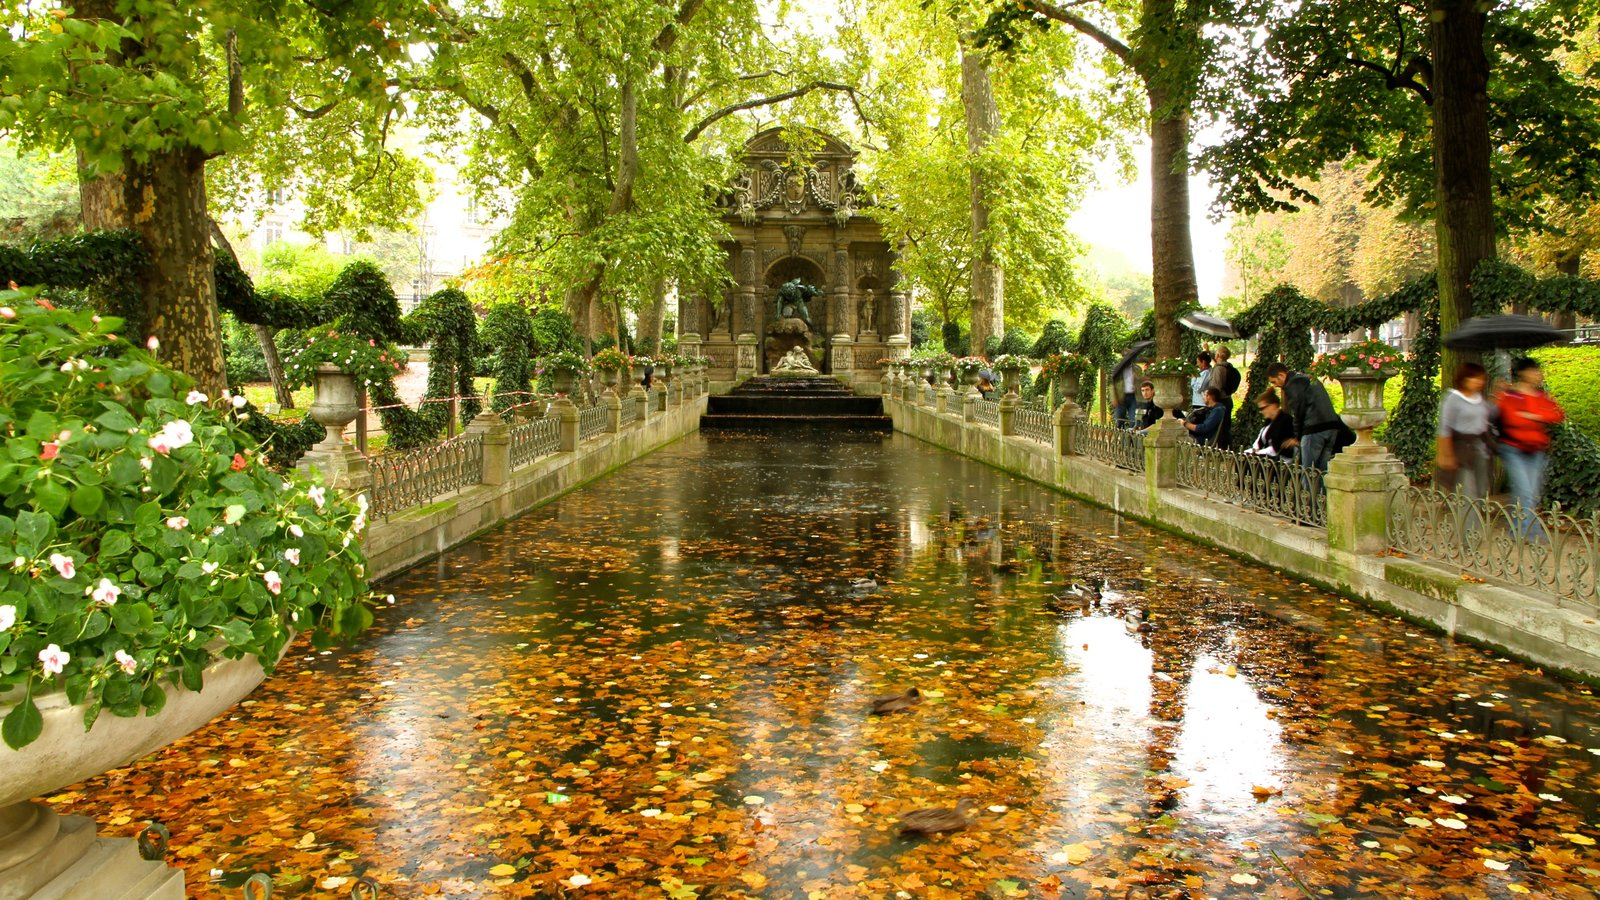 Luxembourg gardens pictures view photos images of for Jardin en france